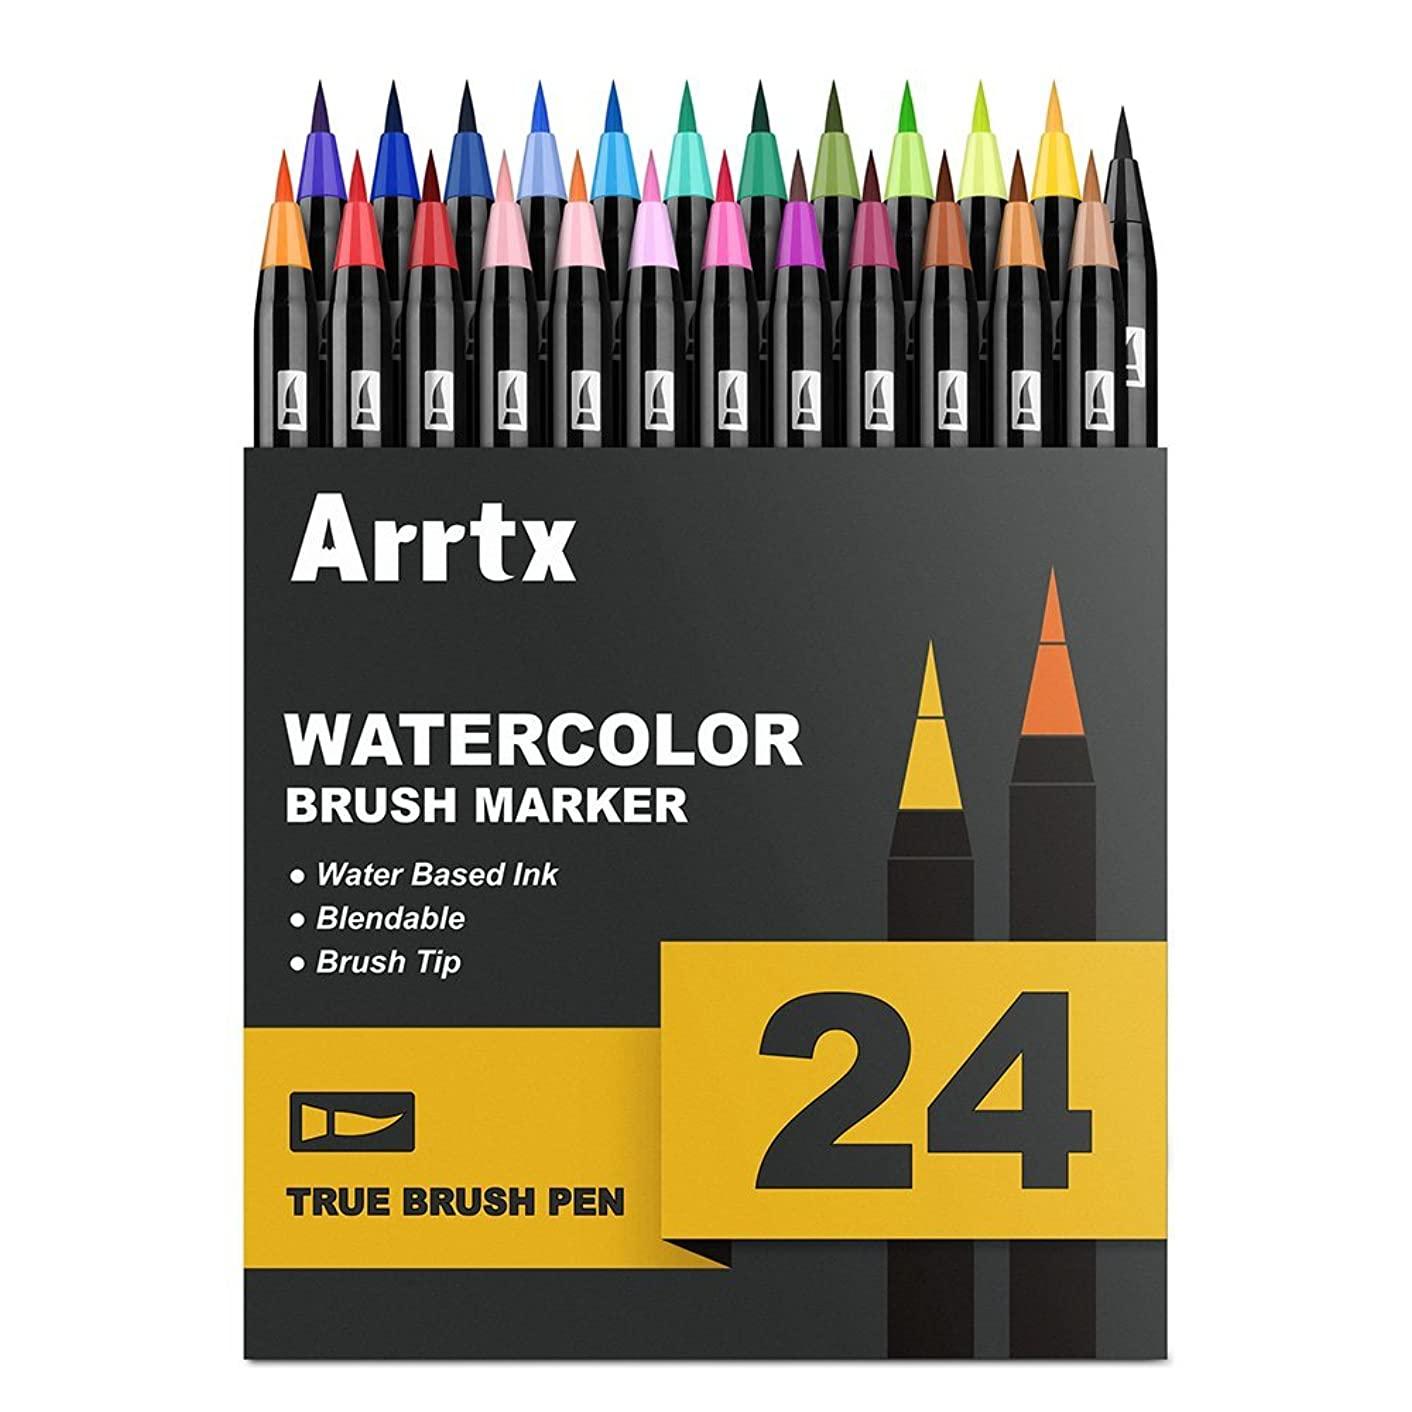 Arrtx Watercolor Markers, 24 Colors Real Brush Pens Water Based Watercolor Brush Pens with Flexible Brush Tips for Painting, Drawing, Coloring, Calligraphy, Manga and More